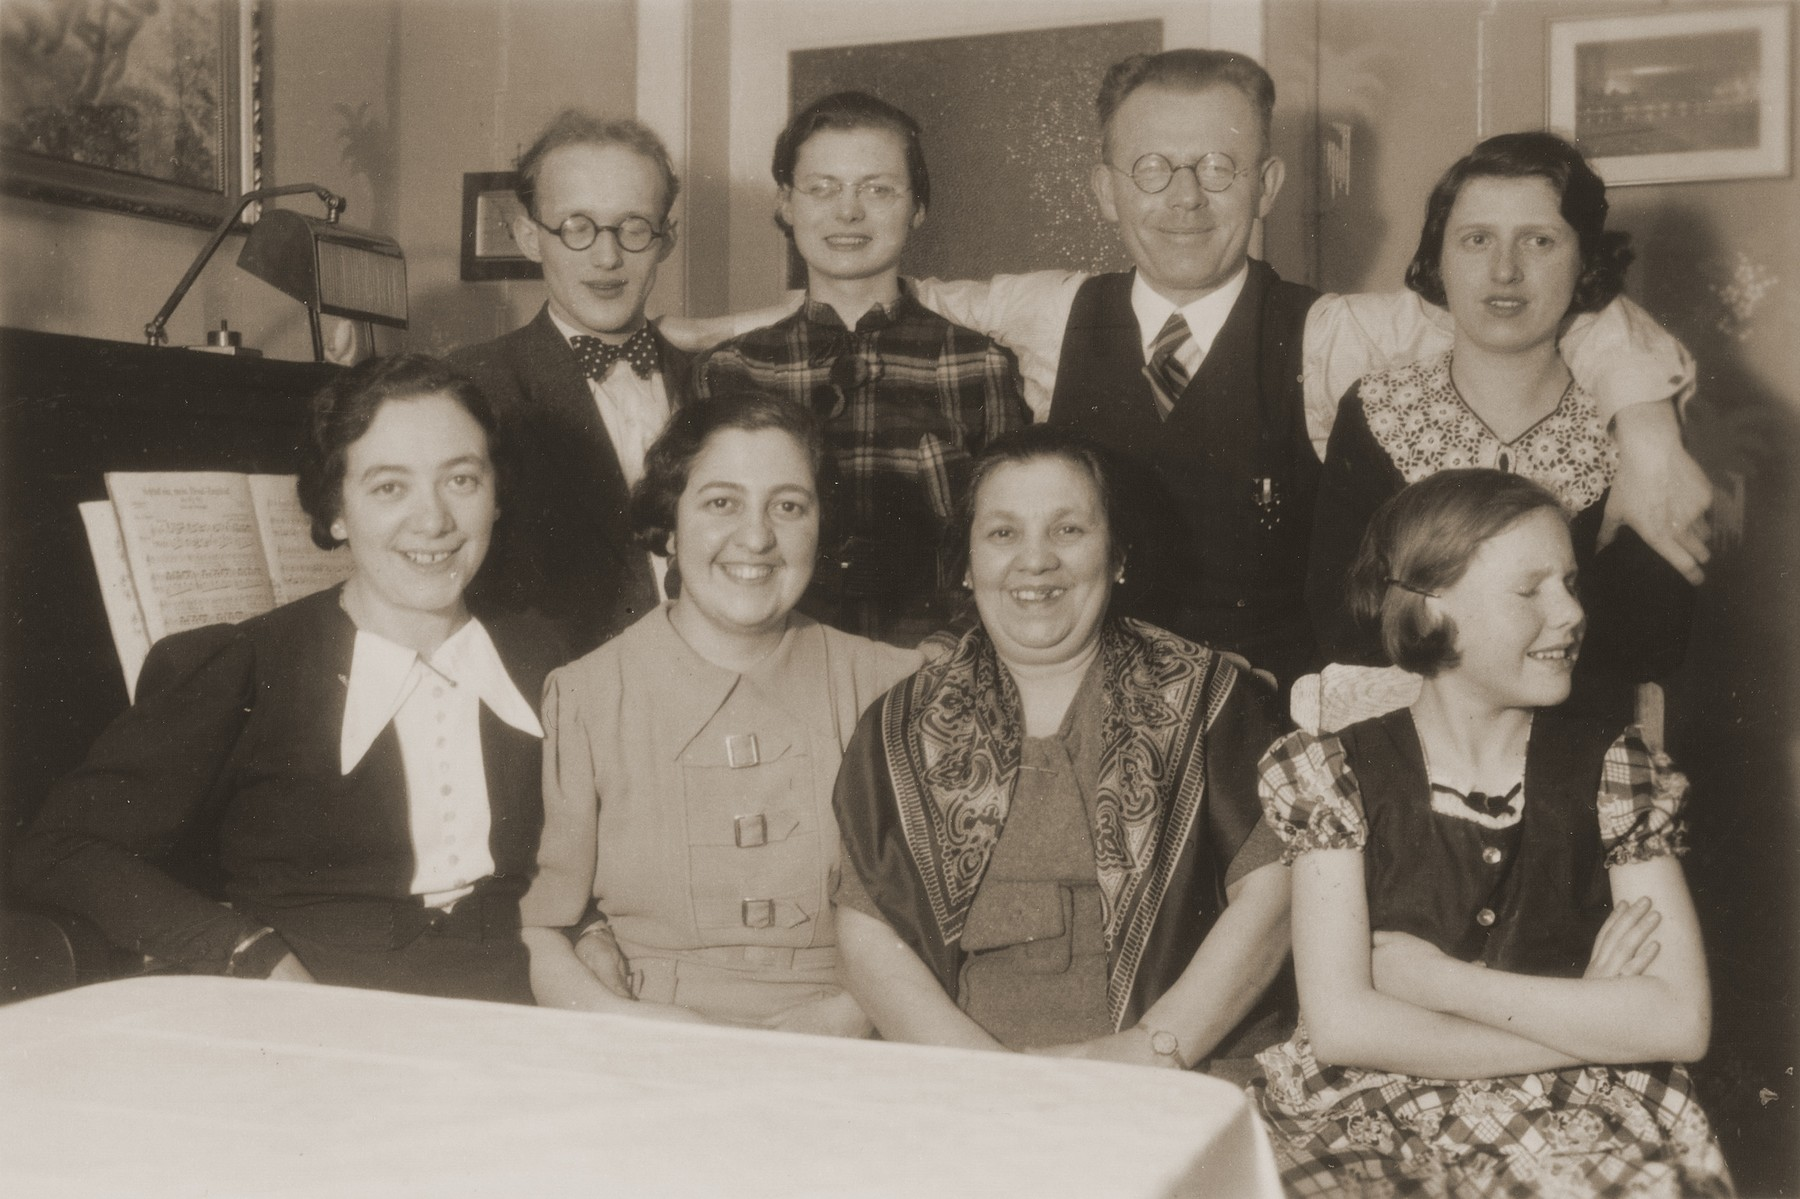 Group portraits of members of the Guttmann and Aisenscharf families in Dresden.    Among those pictured is Ita Guttmann (seated on the far left).